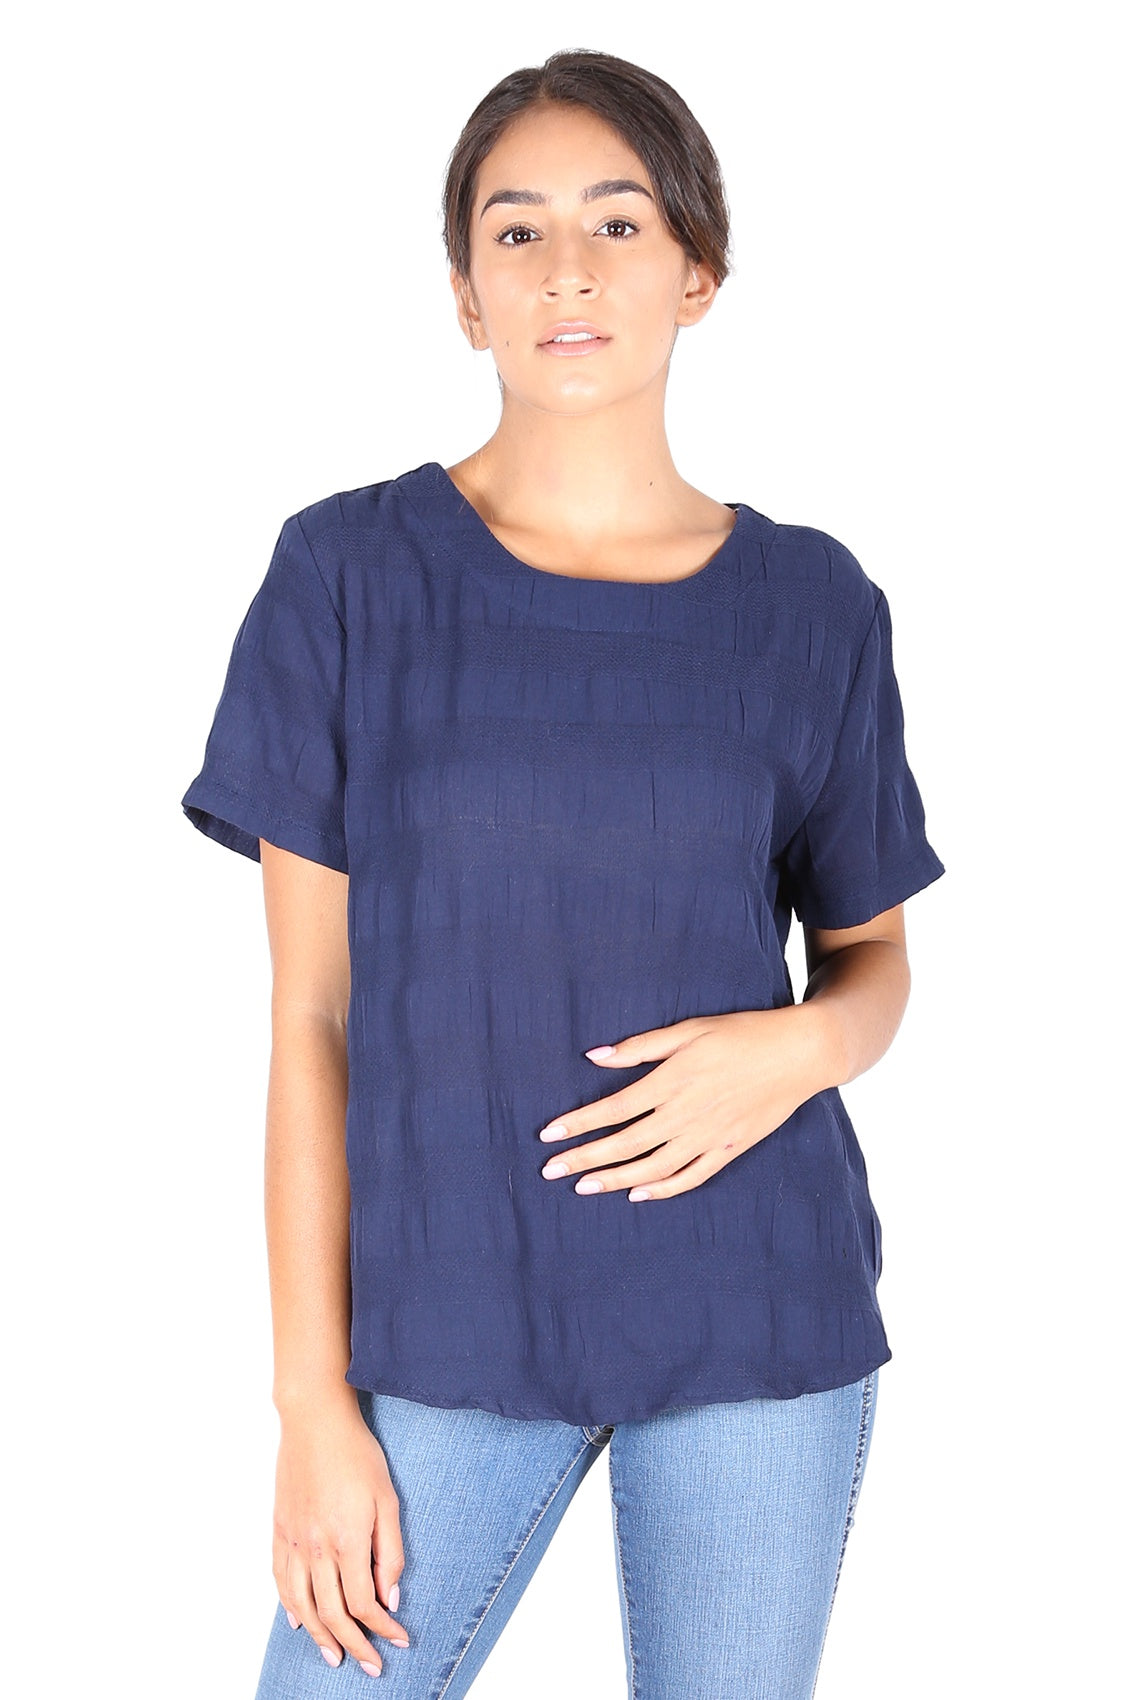 Cromwell Textured Top Navy